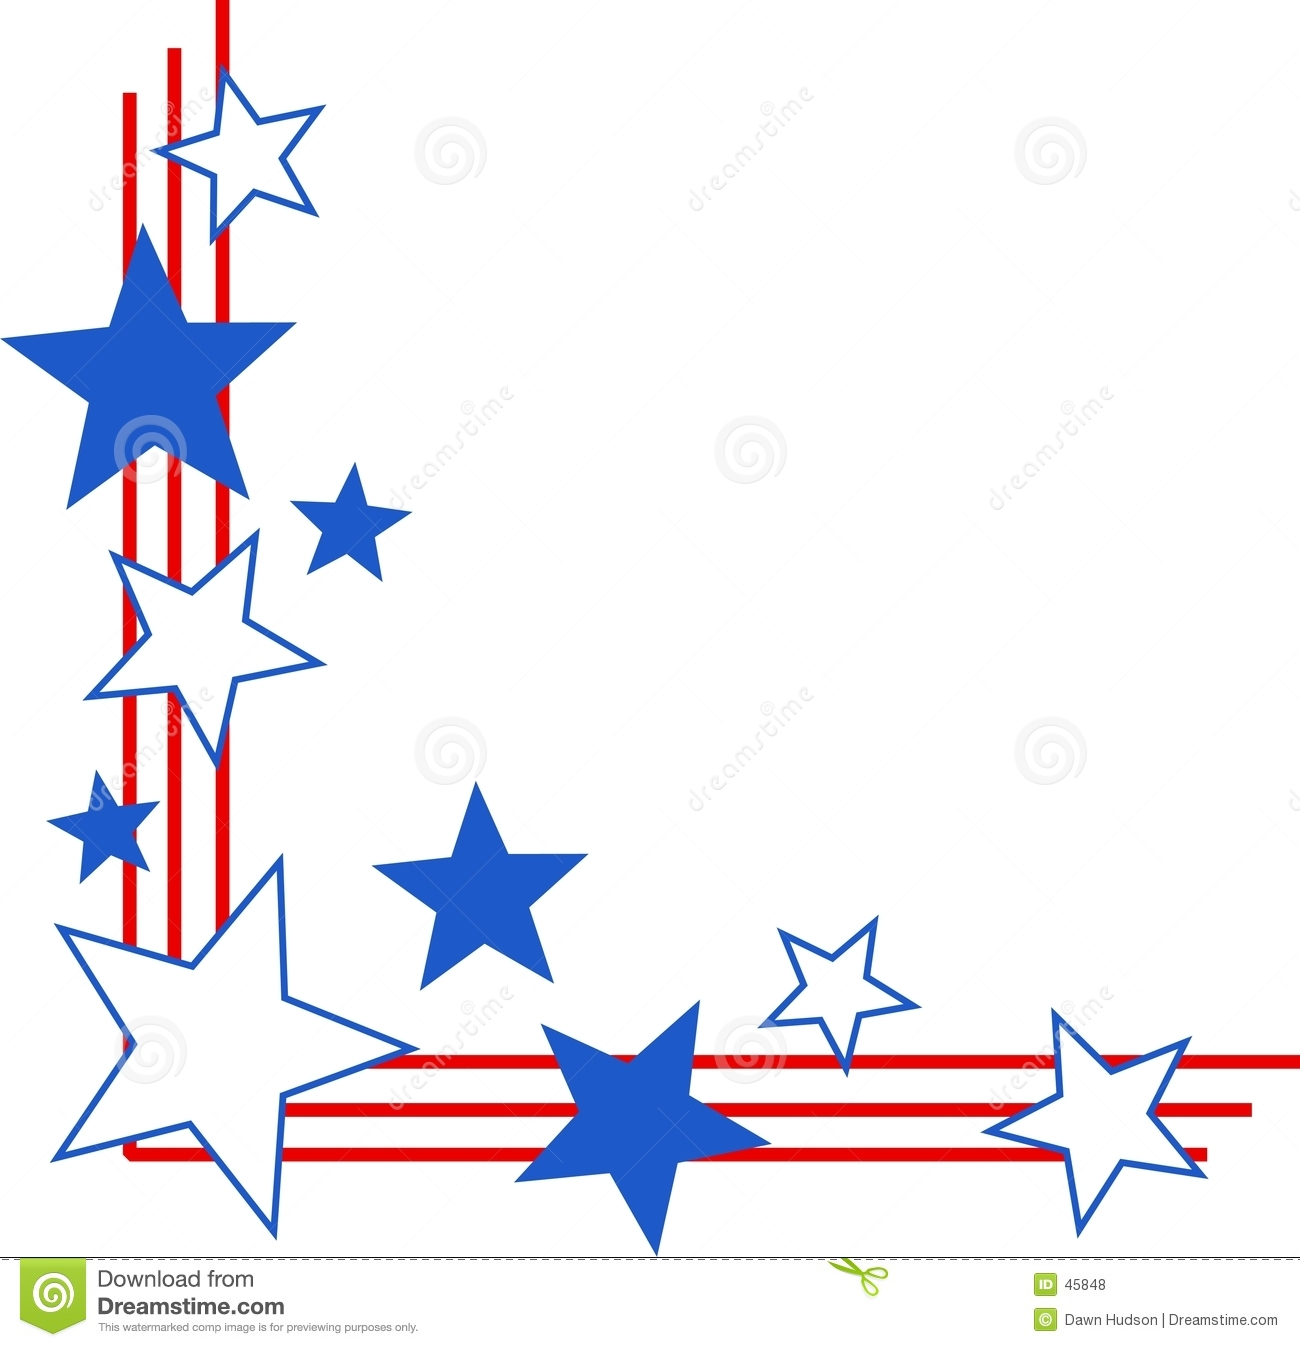 Patriotic star border clipart black and white graphic freeuse library Ocean Border Clipart | Free download best Ocean Border Clipart on ... graphic freeuse library